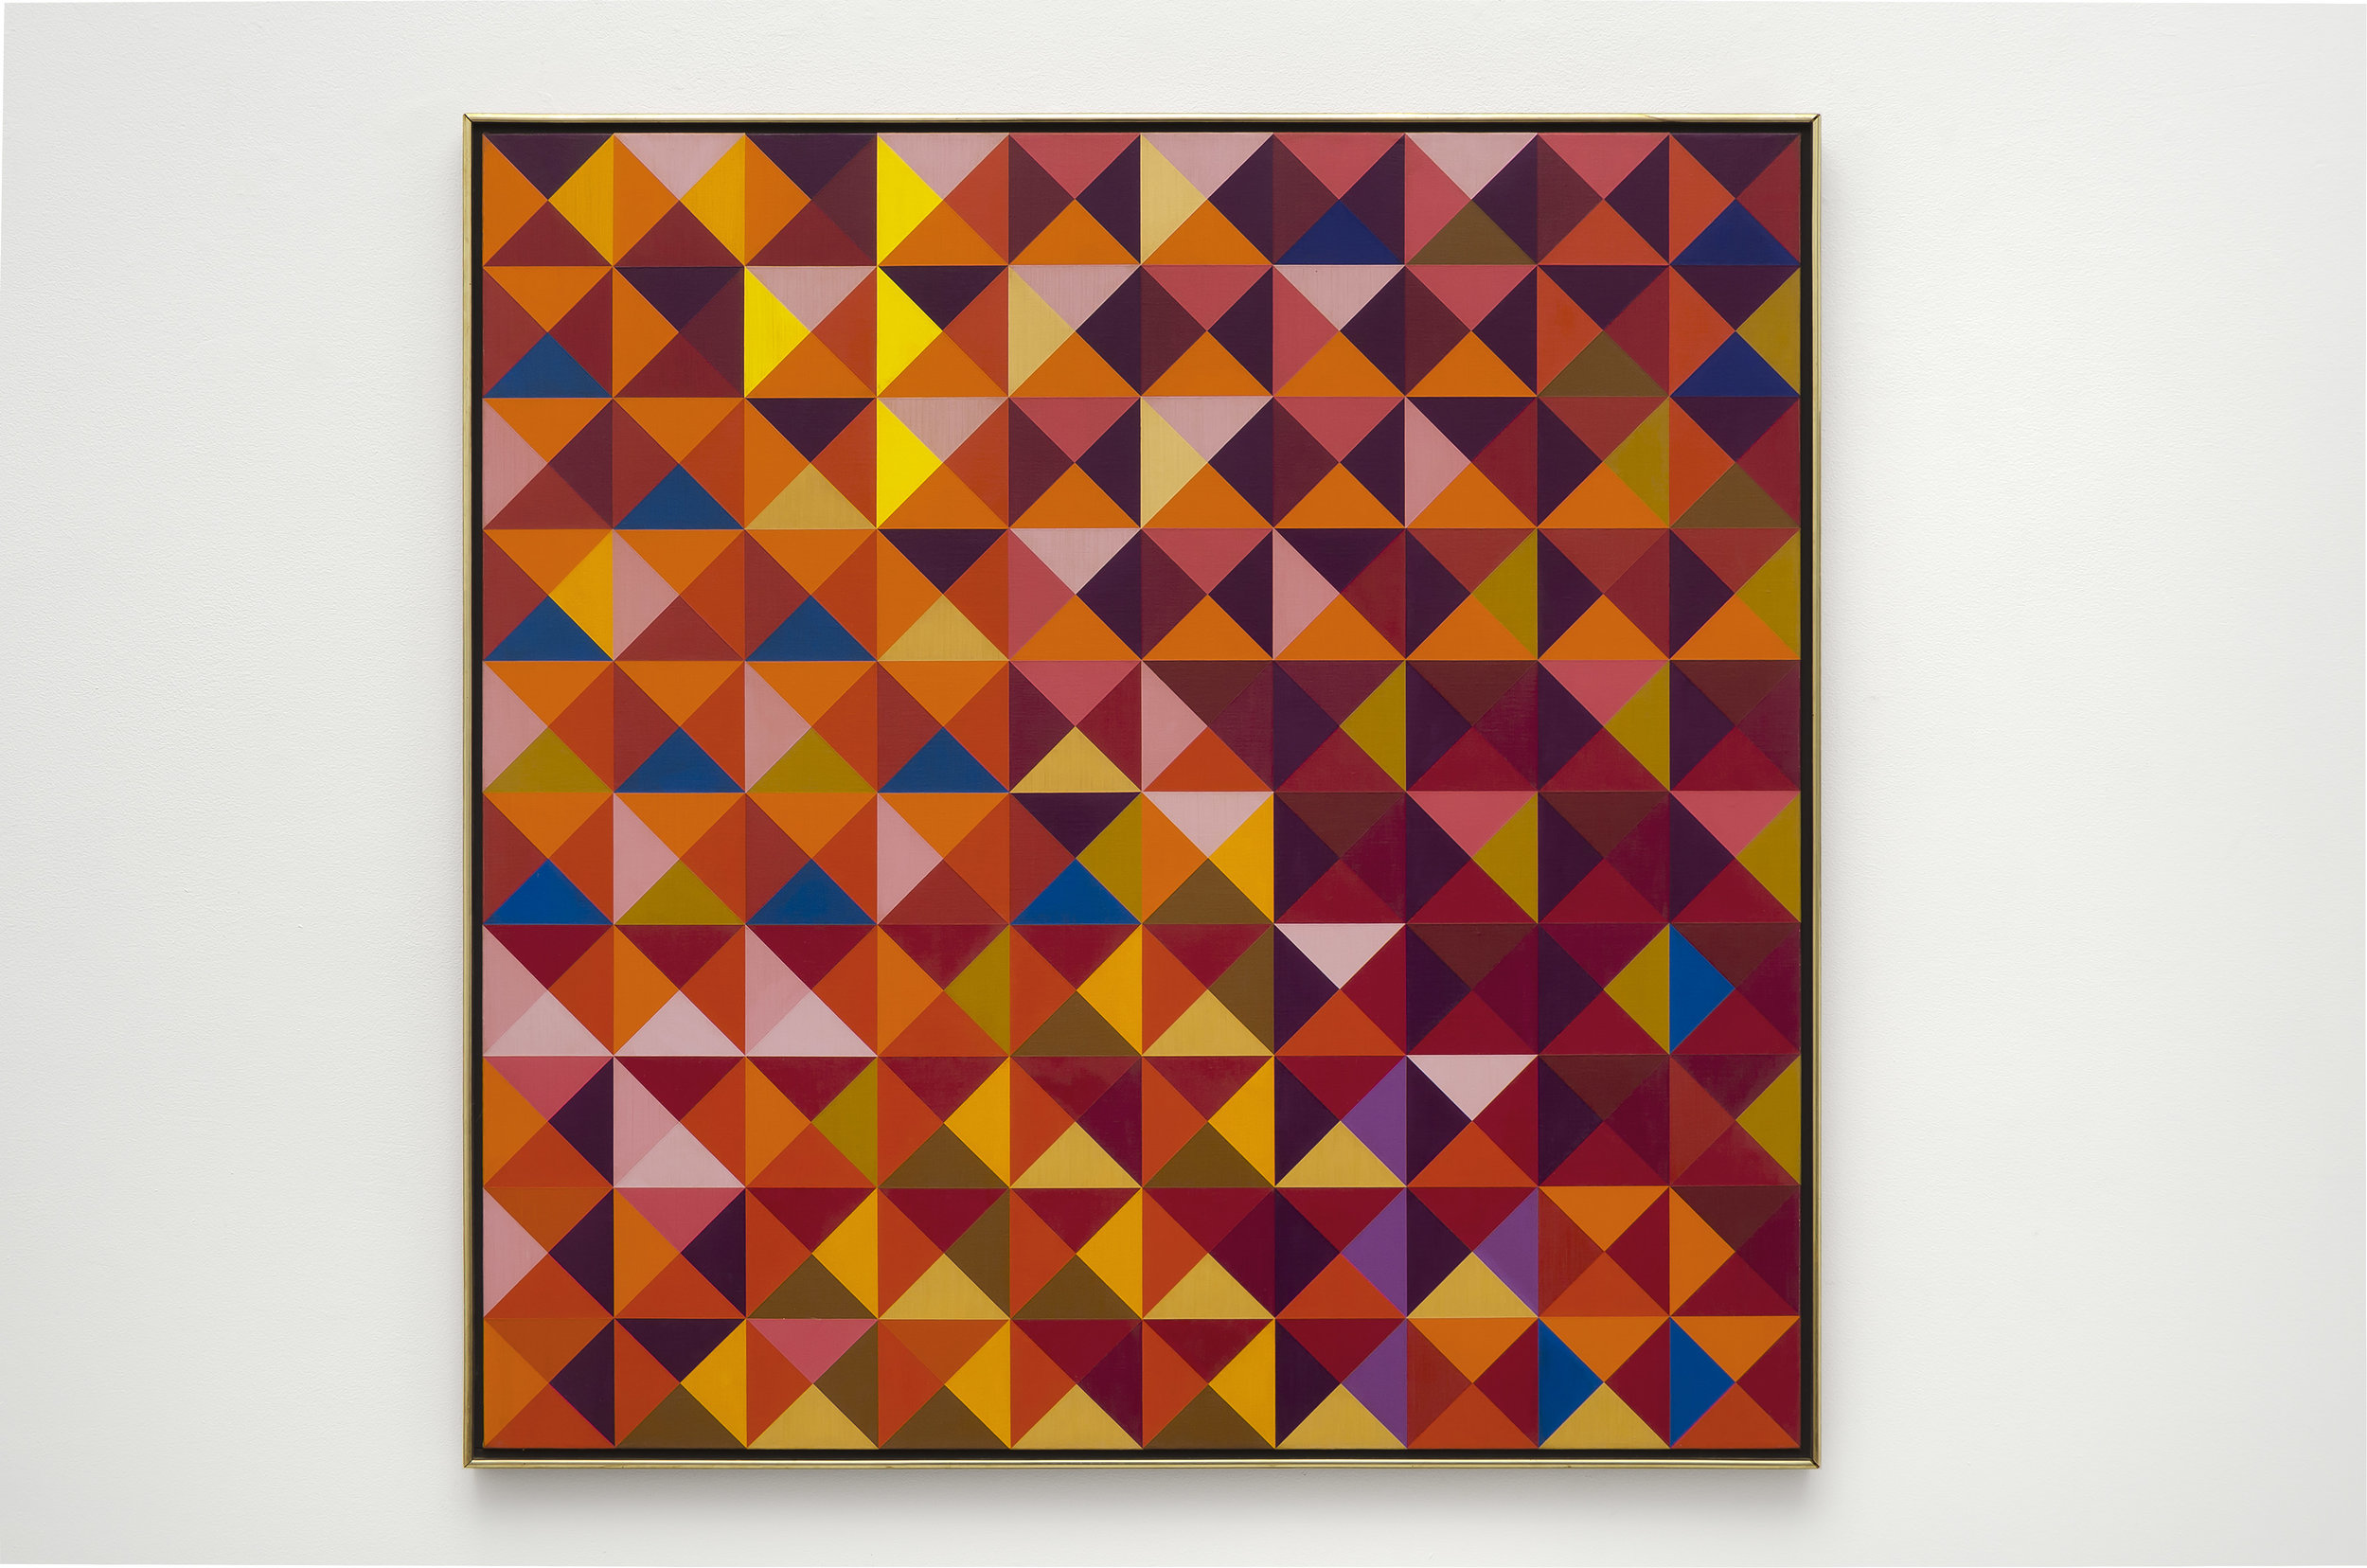 #2 , 1967  oil on canvas 42 x 42 inches; 106.7 x 106.7 centimeters